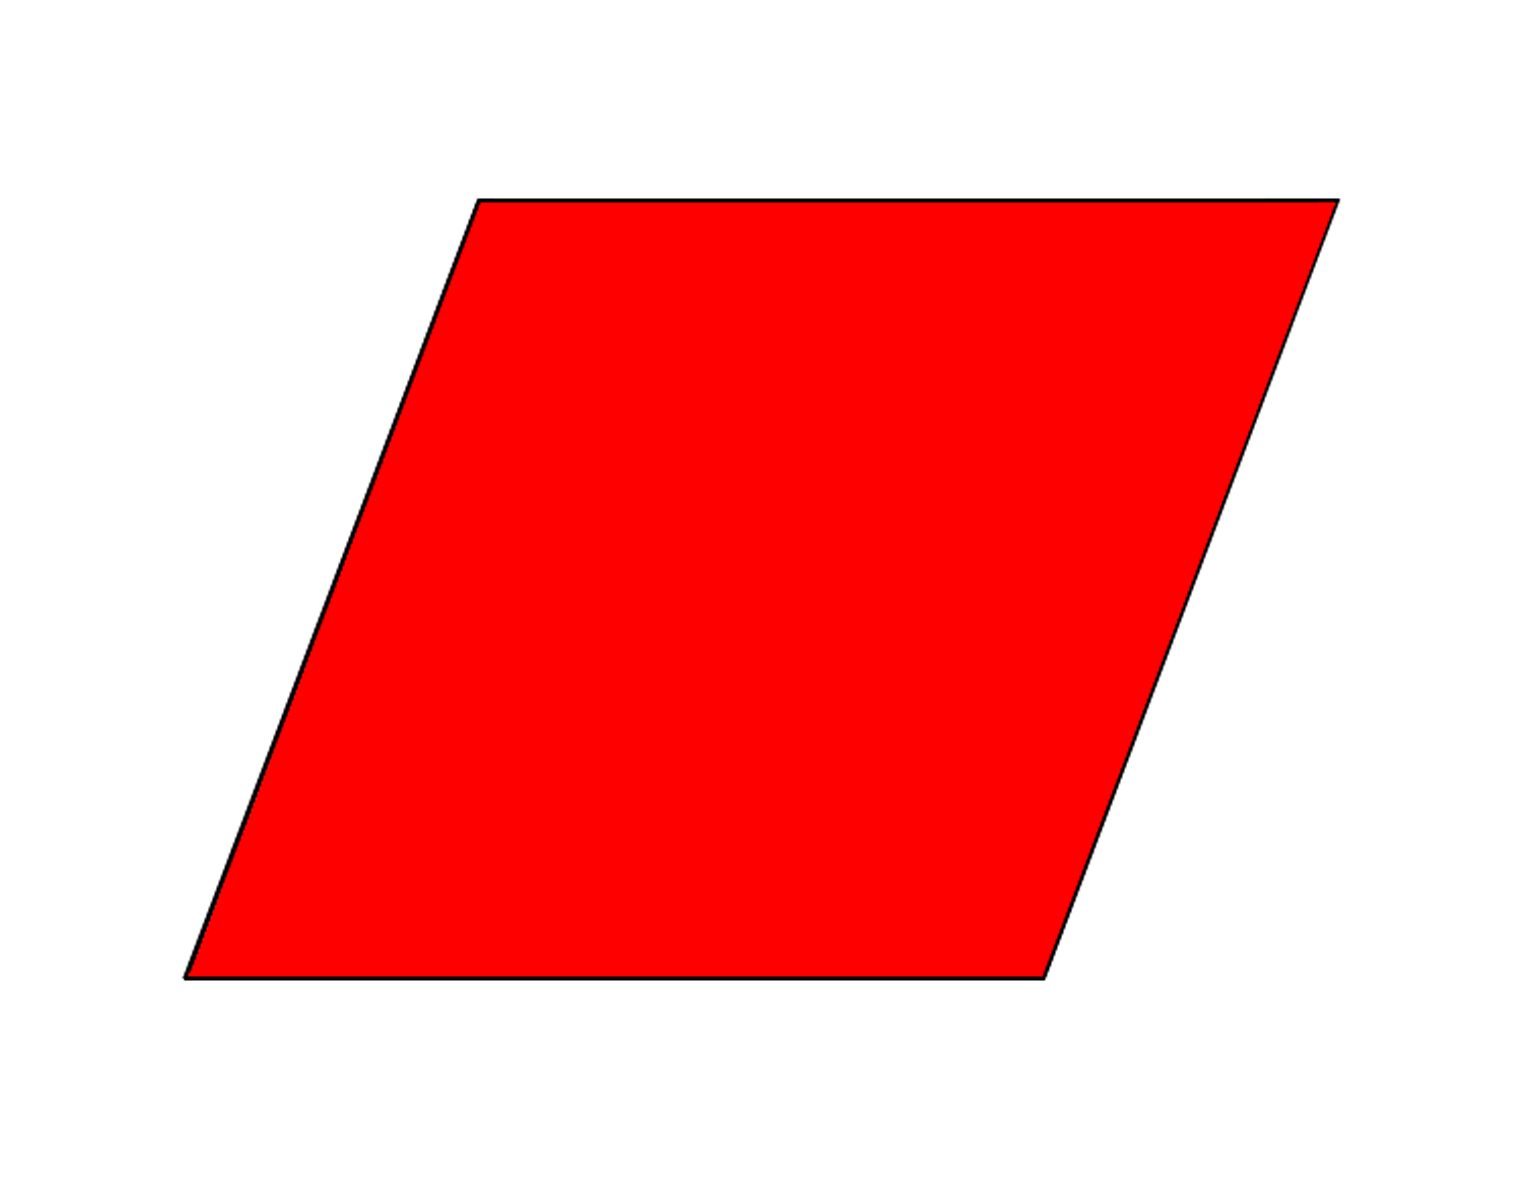 Free Parallelogram Cliparts, Download Free Clip Art, Free.